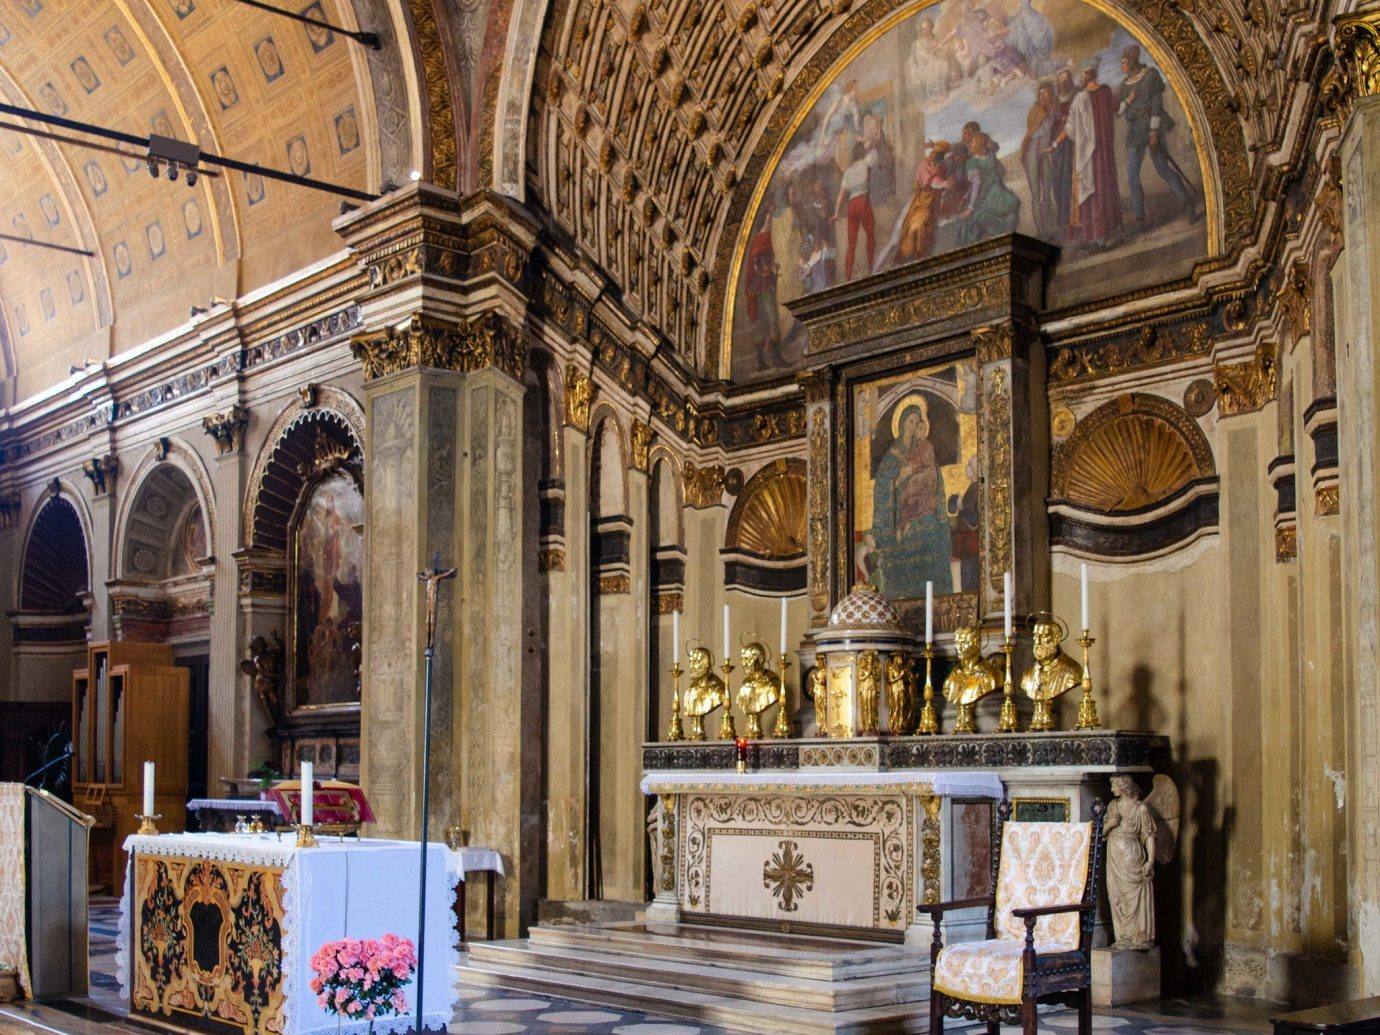 Arts + Culture Italy Milan building arch place of worship column Church interior design basilica tourist attraction chapel byzantine architecture religious institute medieval architecture window arcade cathedral altar crypt historic site baptistery colonnade